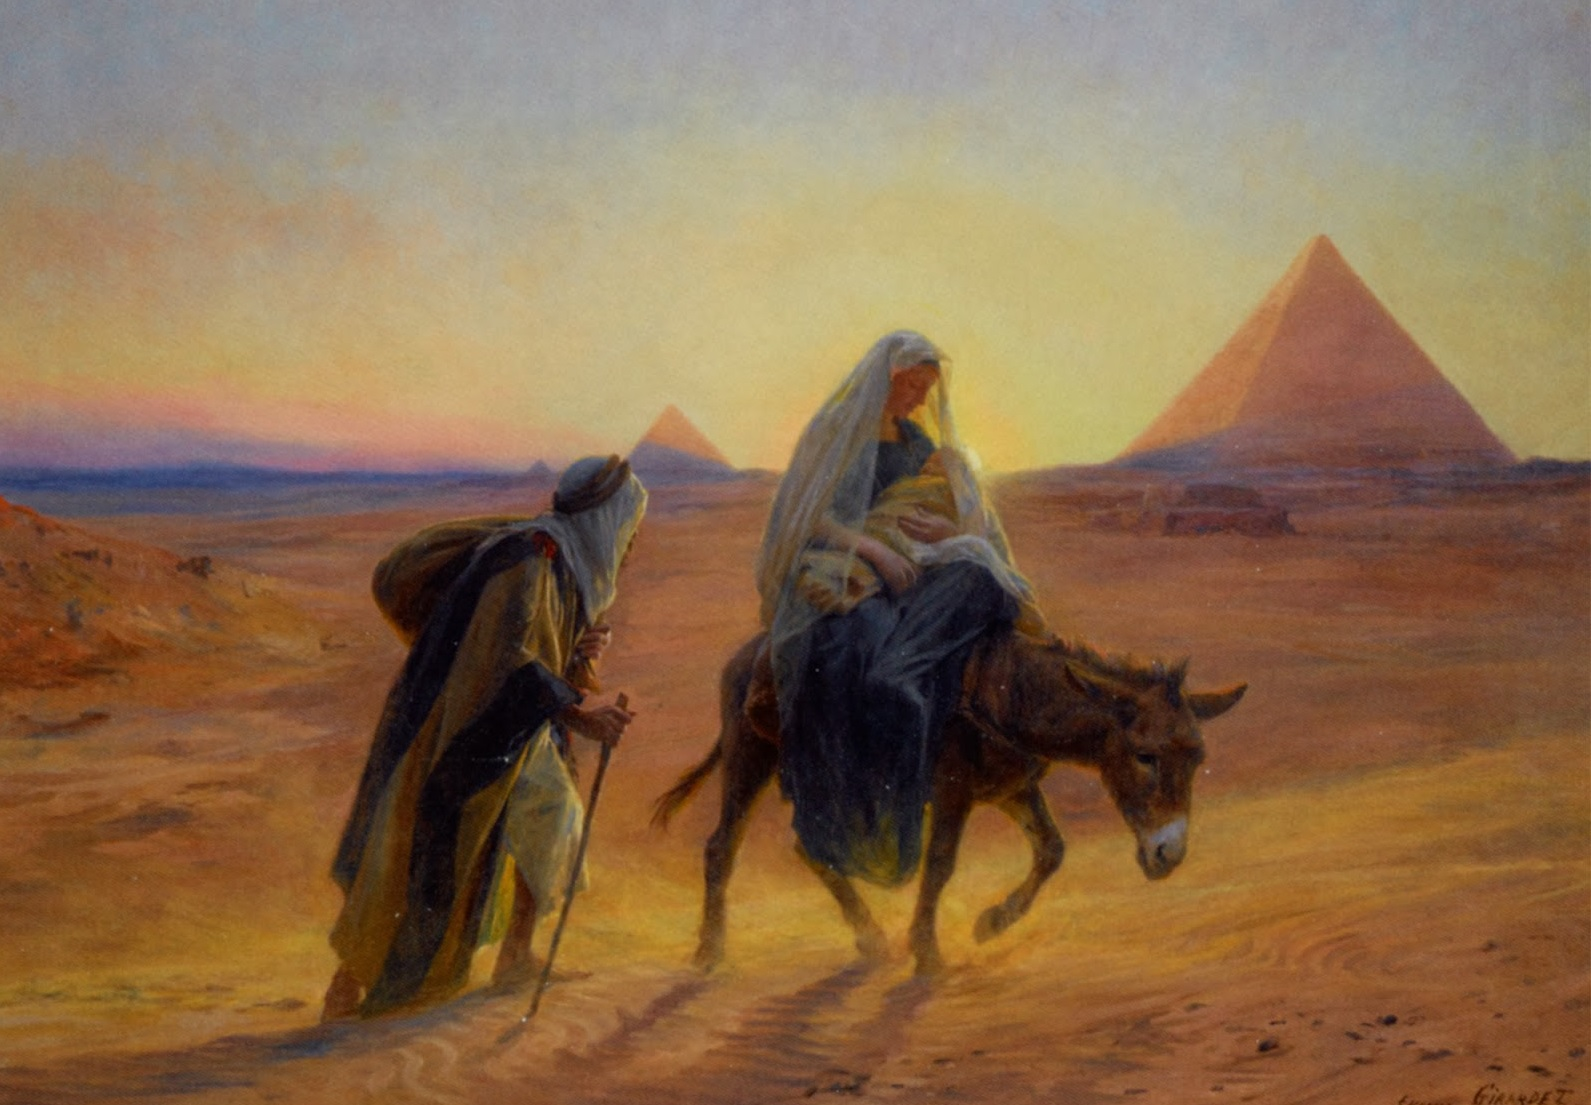 OCTAVE OF CHRISTMAS, DAY 7, DECEMBER 31ST – Journeying Into Mystery